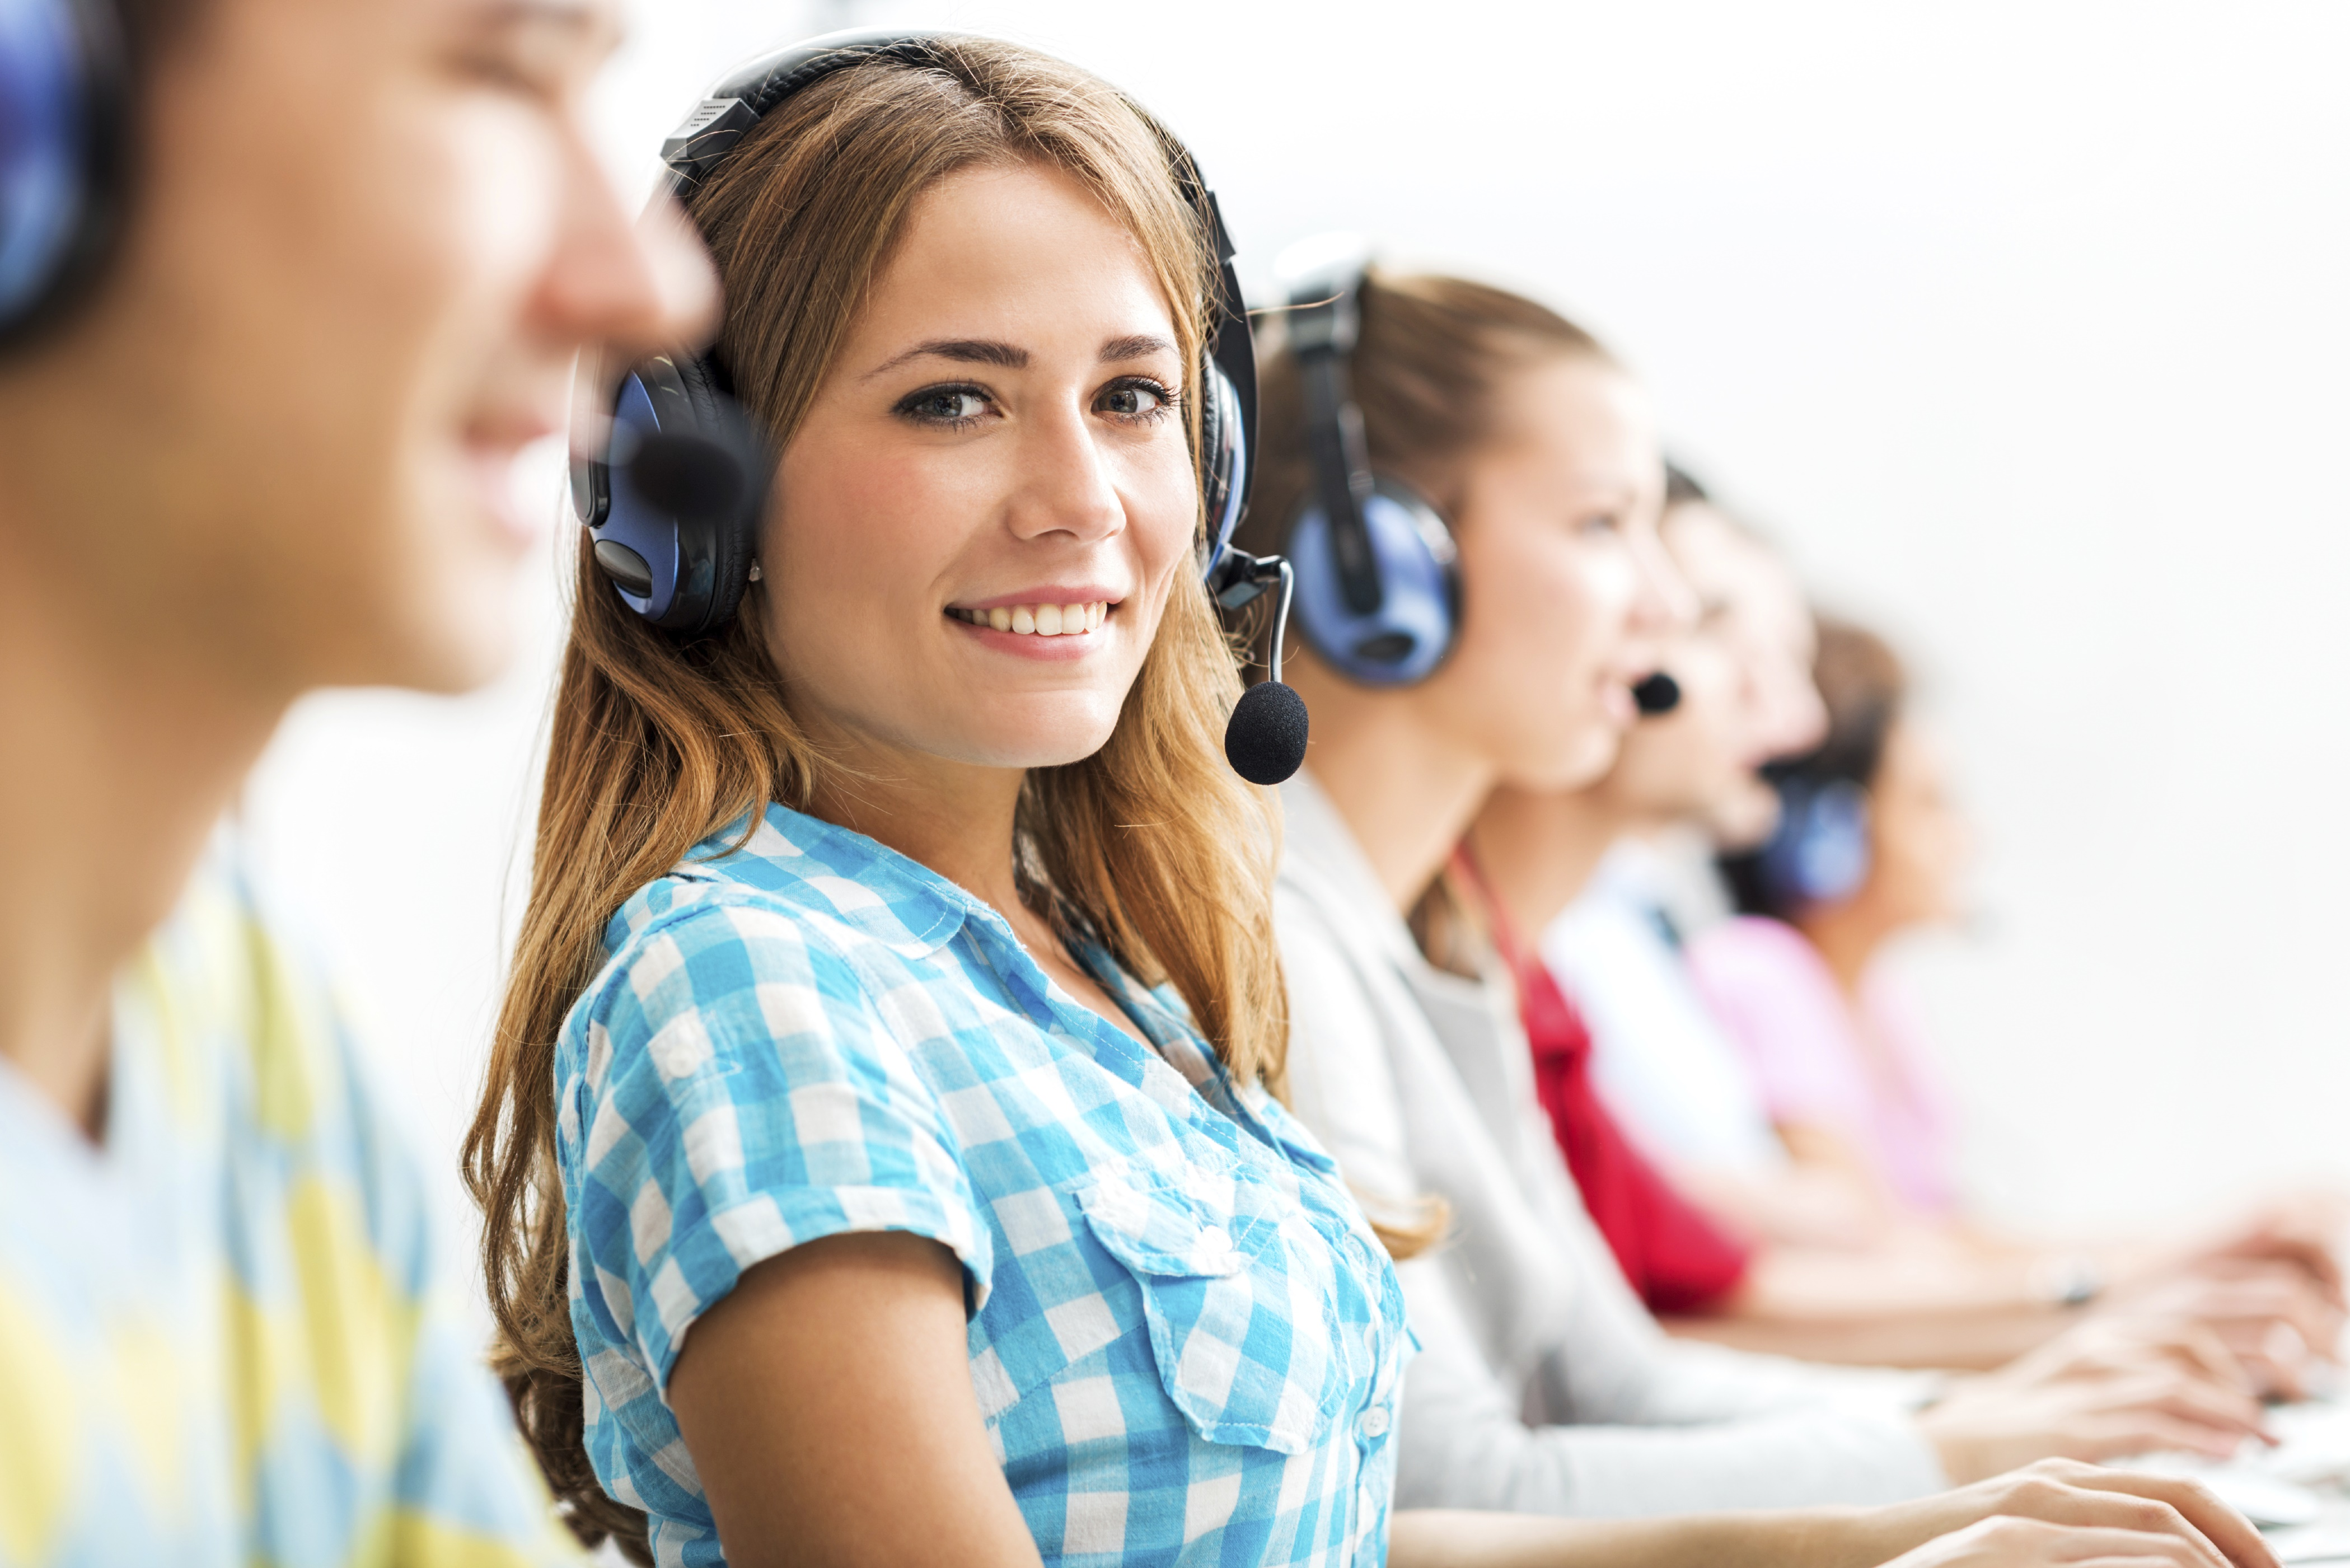 Group of young students sitting in a row at a computer class wearing headphones. Focus is on smiling young woman looking at the camera.